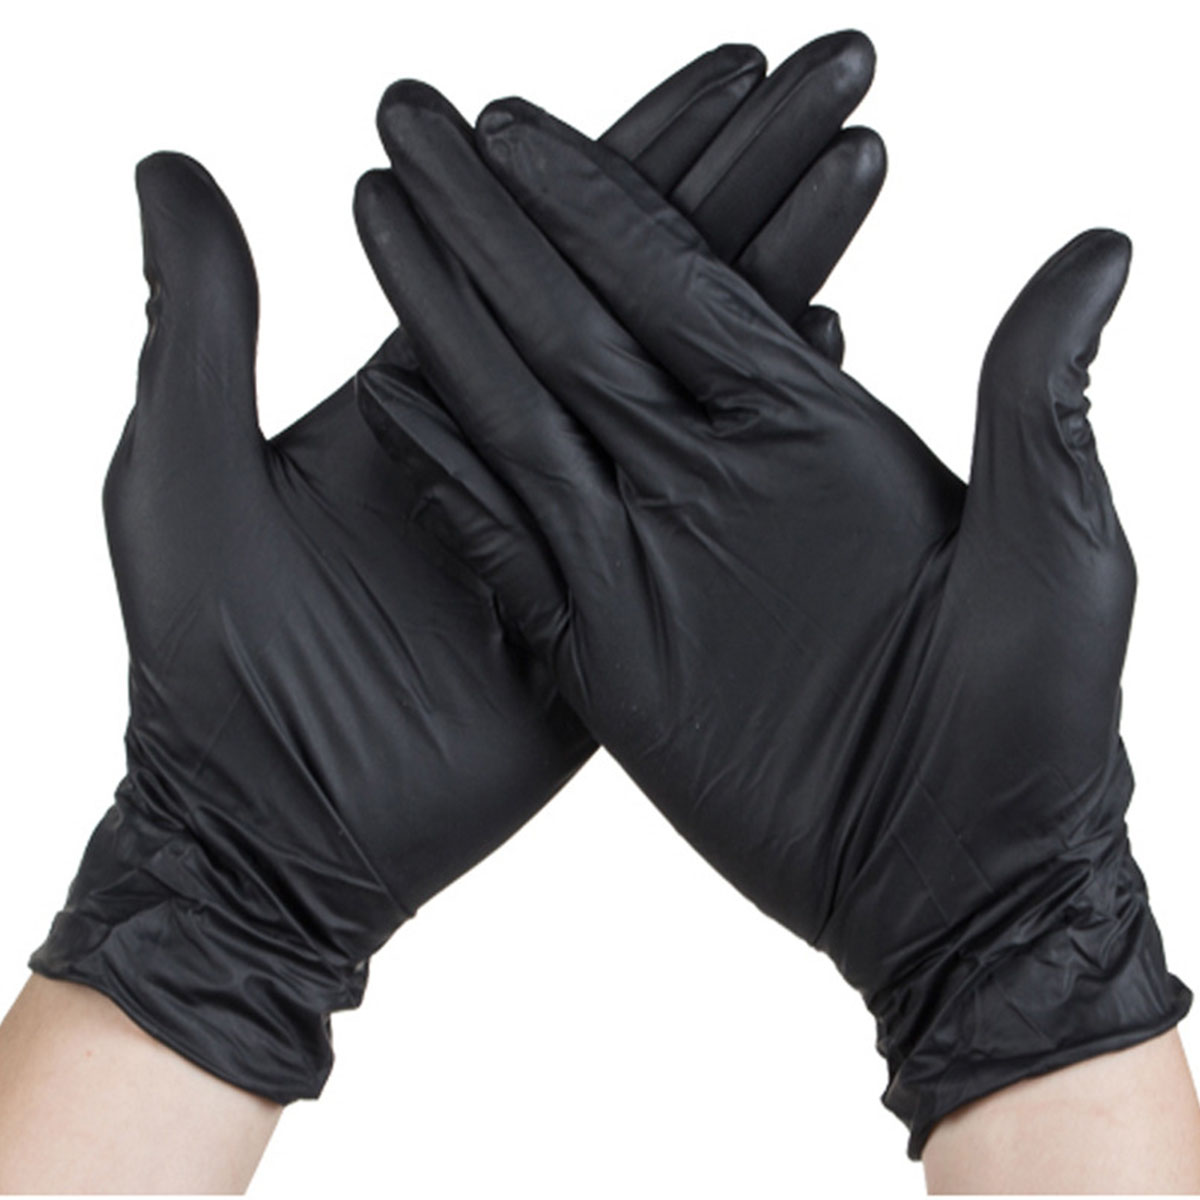 100pcs Disposable Latex Ruber Gloves Cleaning Work Finger Gloves Protective For Surgical Safety Black